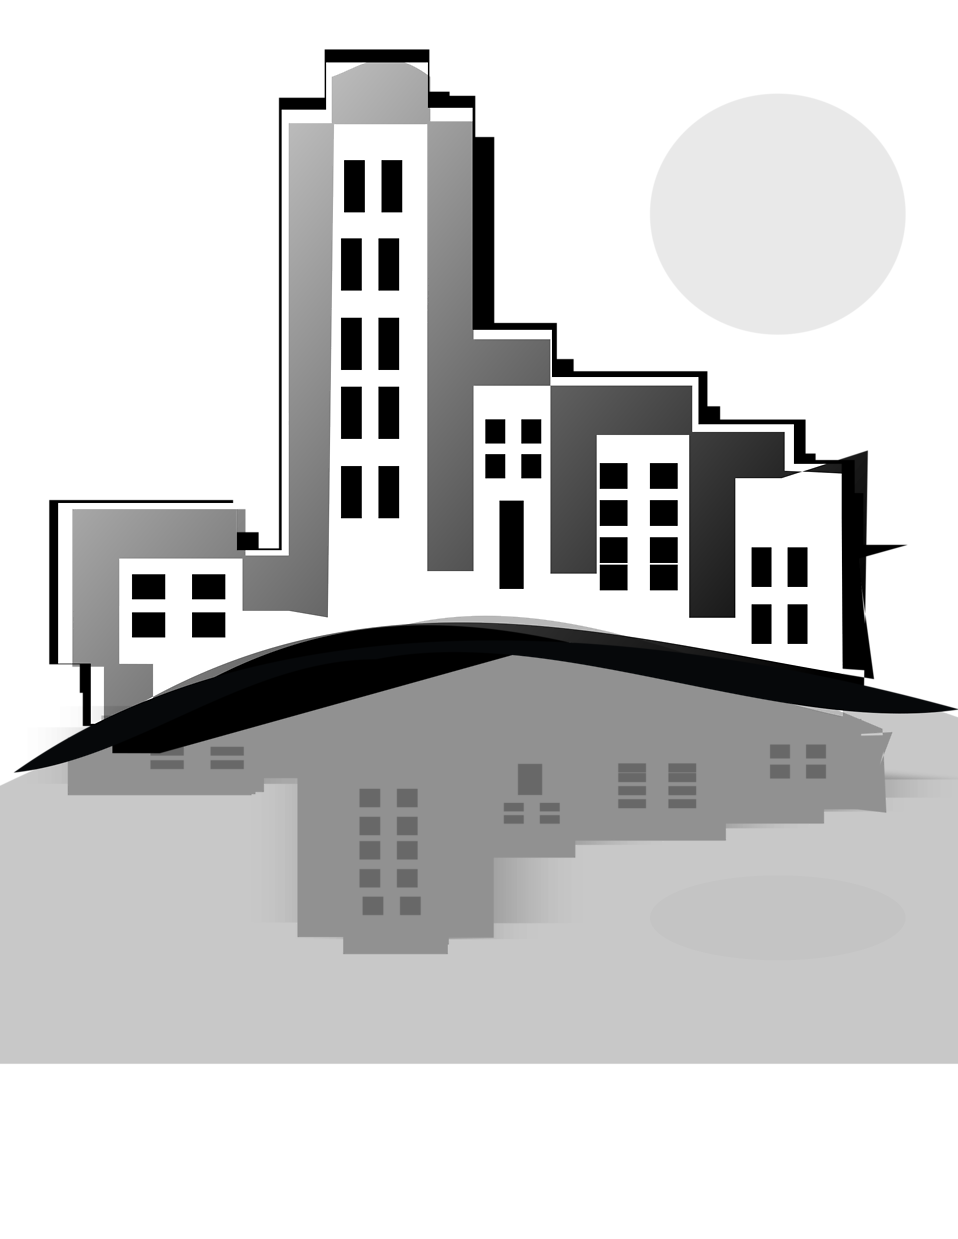 Office building clipart black and white png png black and white download Office Building Construction Scheduling and Management - Palmetto ... png black and white download